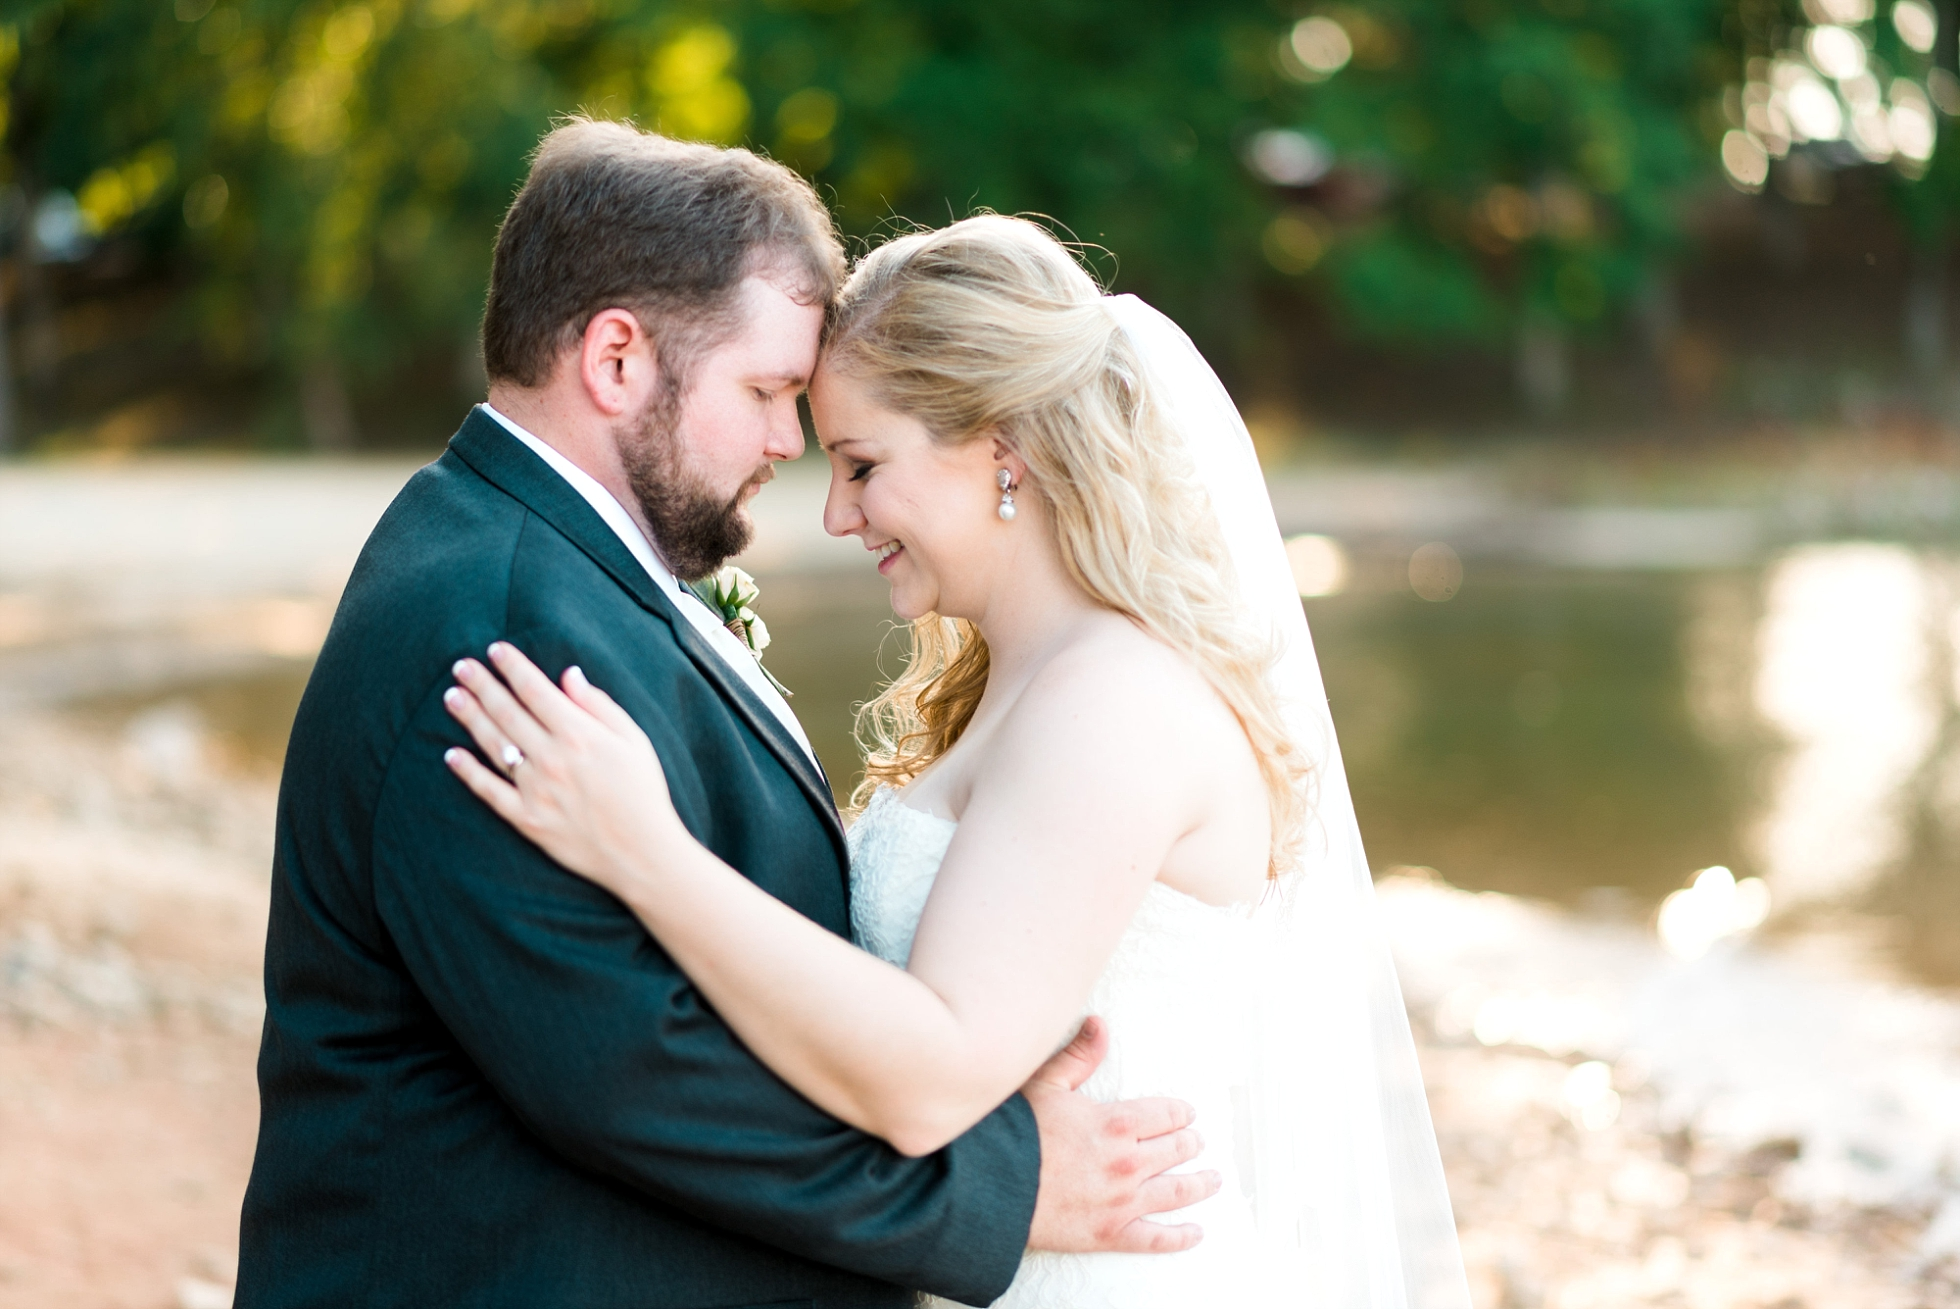 Lake Front | Kyle & Erin | Scarbrough Wedding | Children's Harbor | Laura Wilkerson Photography